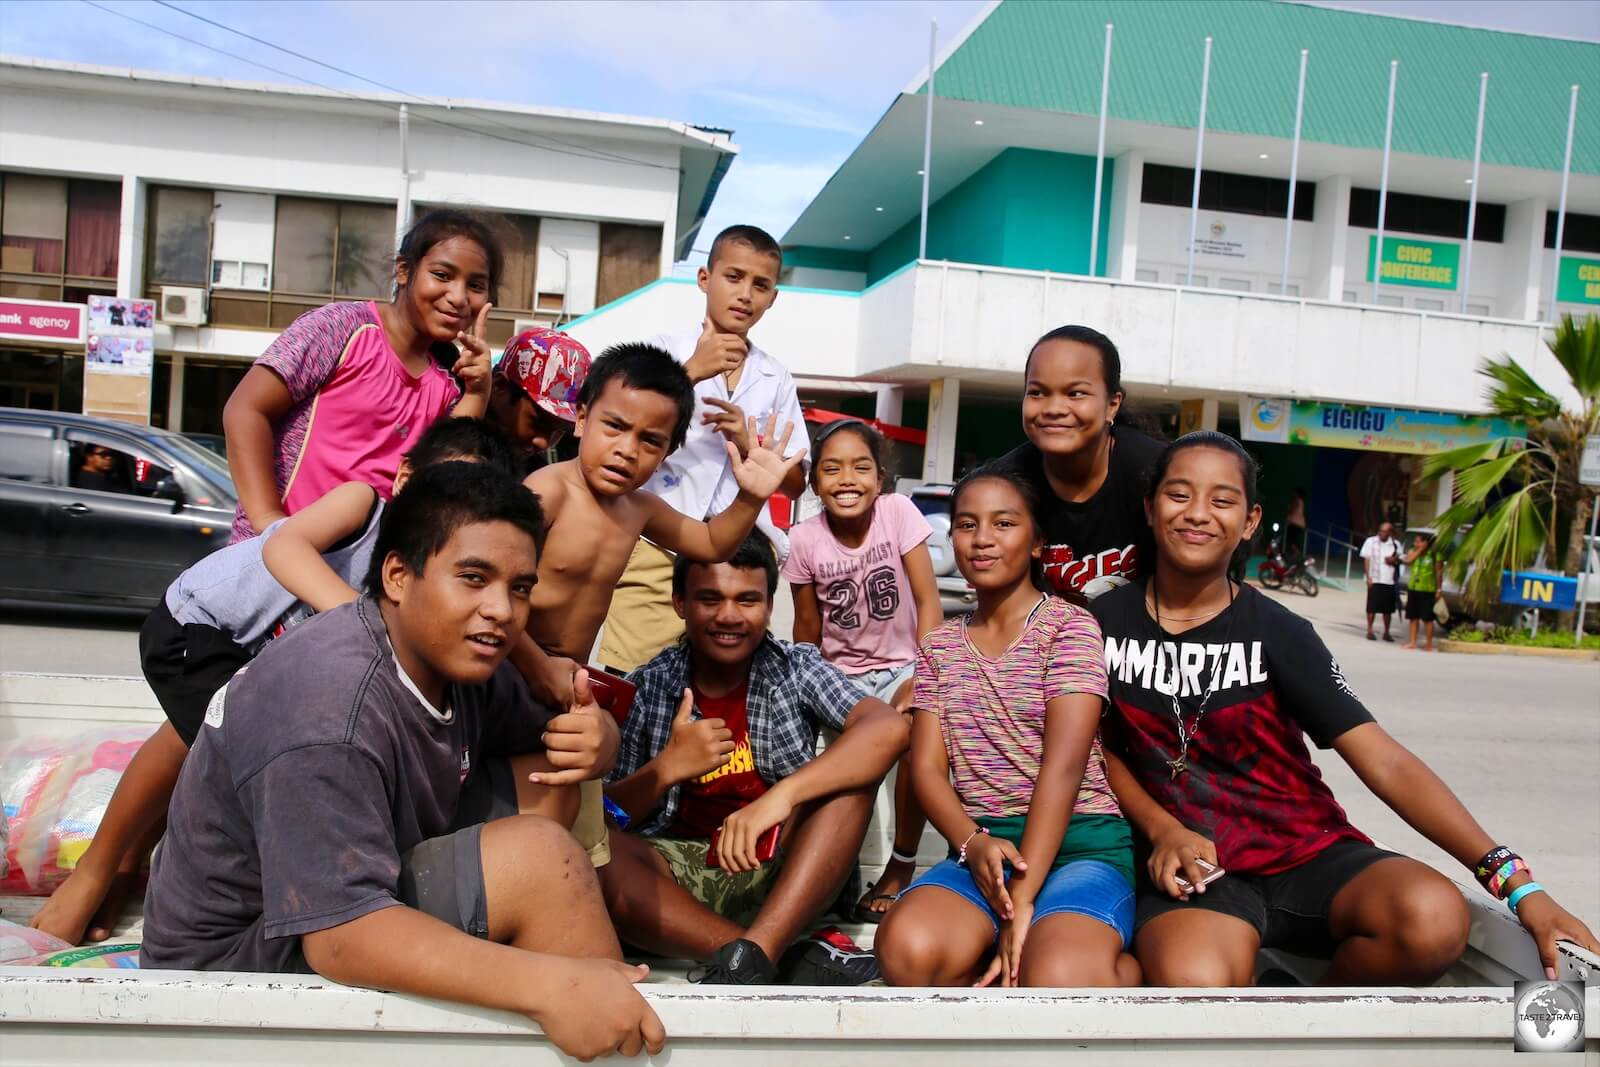 Always friendly smiles on wonderful Nauru.